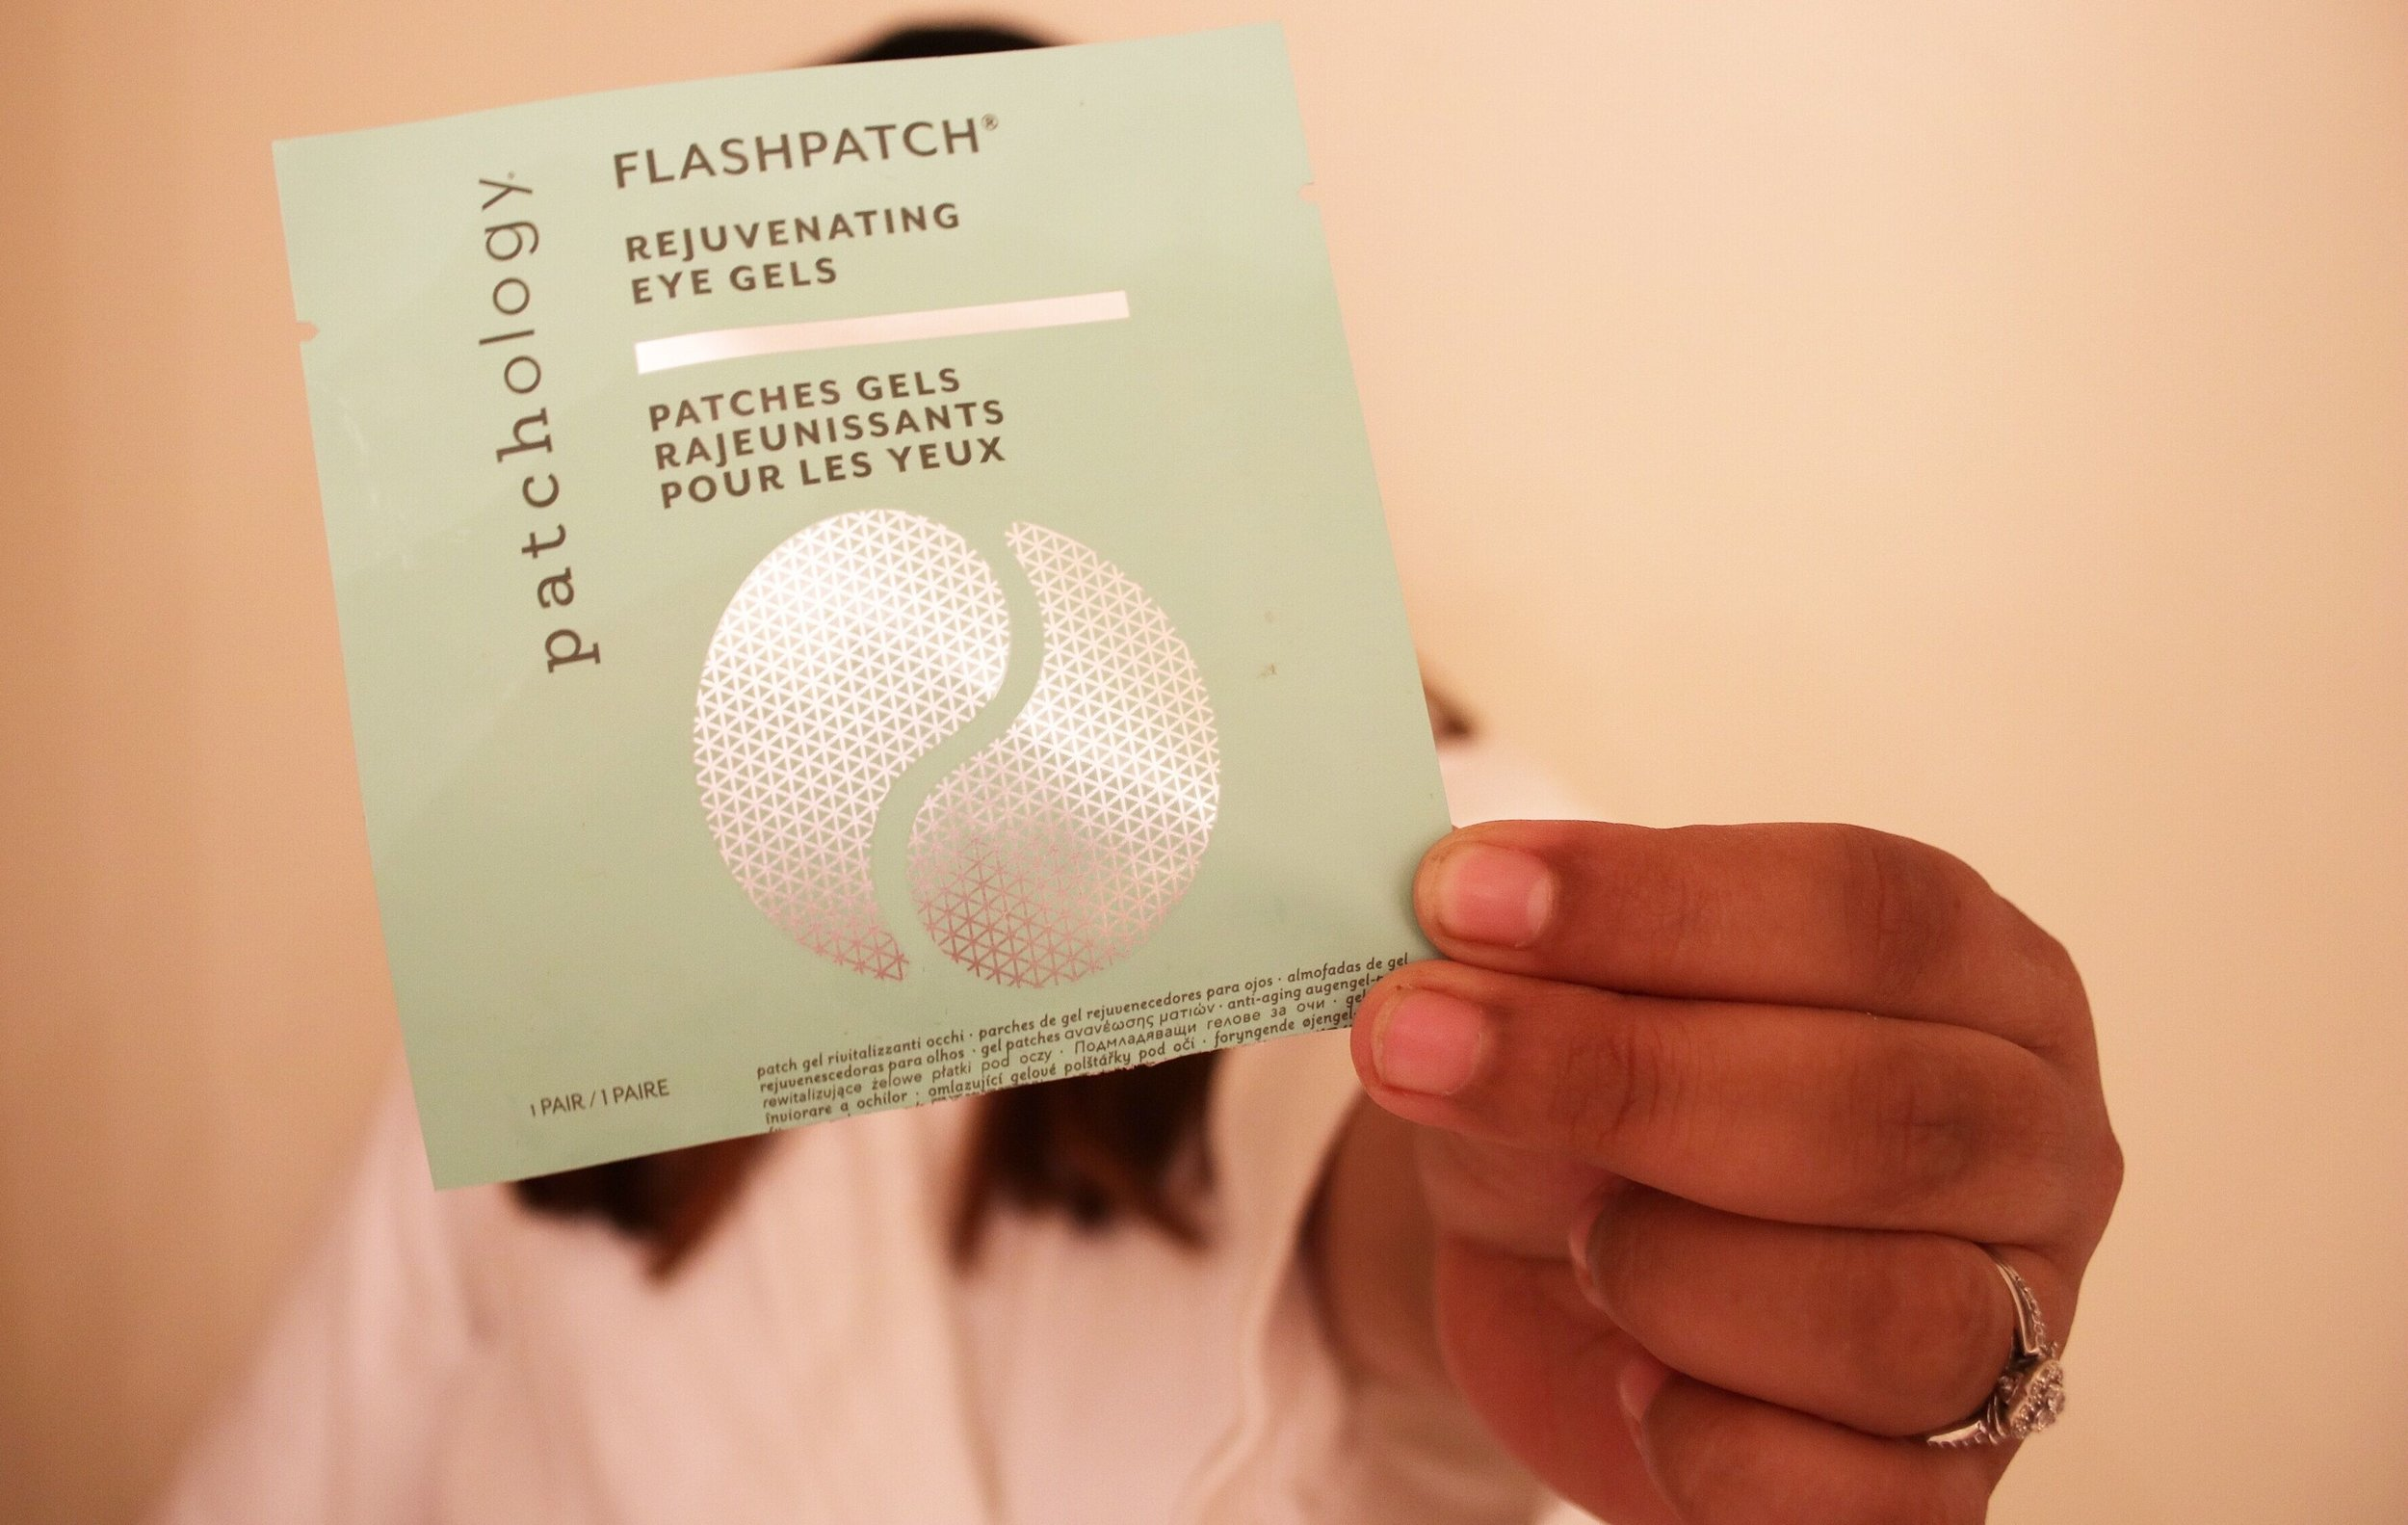 feel beautiful inside, embrace your natural glow, patchology, patchology eye gels, patchology sheet masks, patchology product review, self care, self care routine